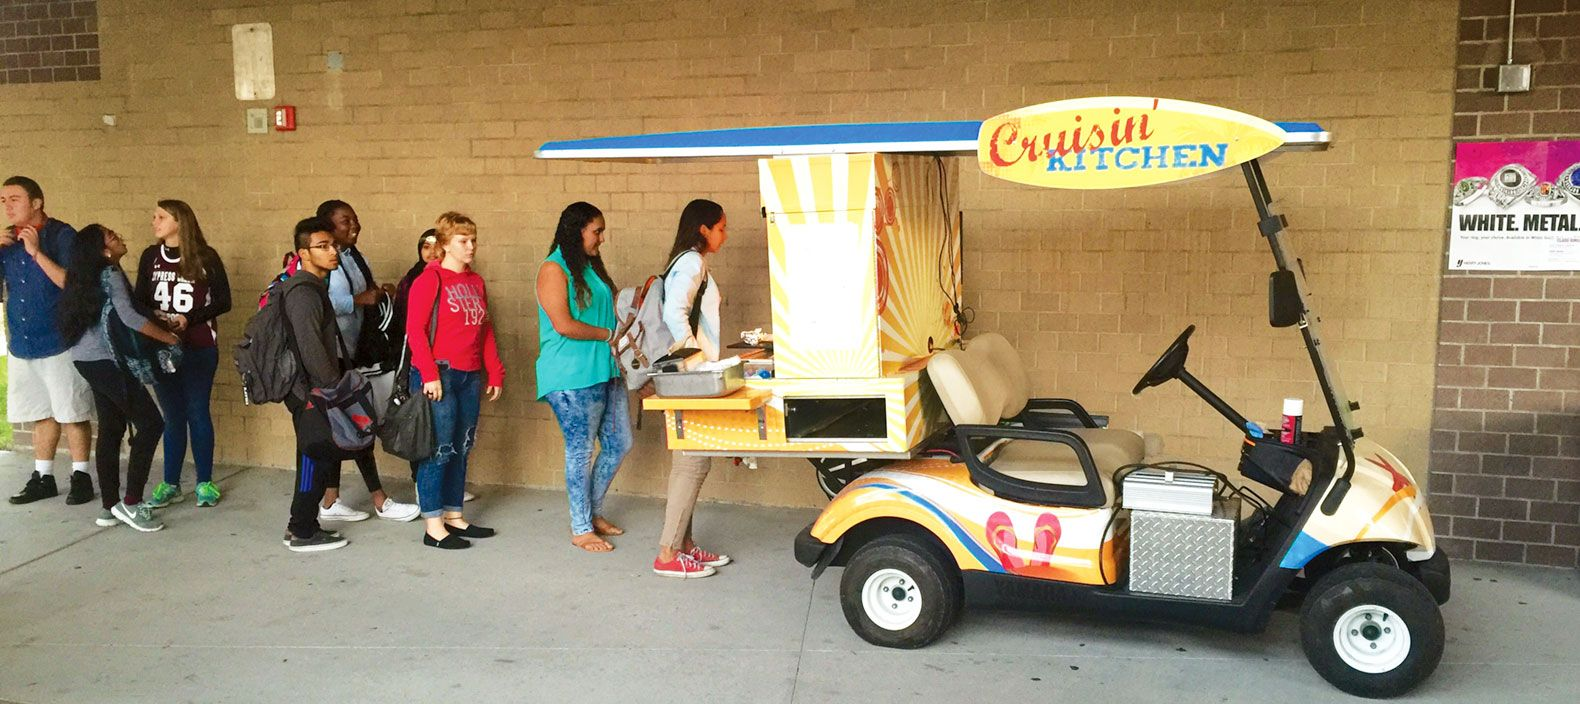 The district uses a golf cart to bring dinner to students at high-poverty schools who participate in after-school activities spread out over a large campus.